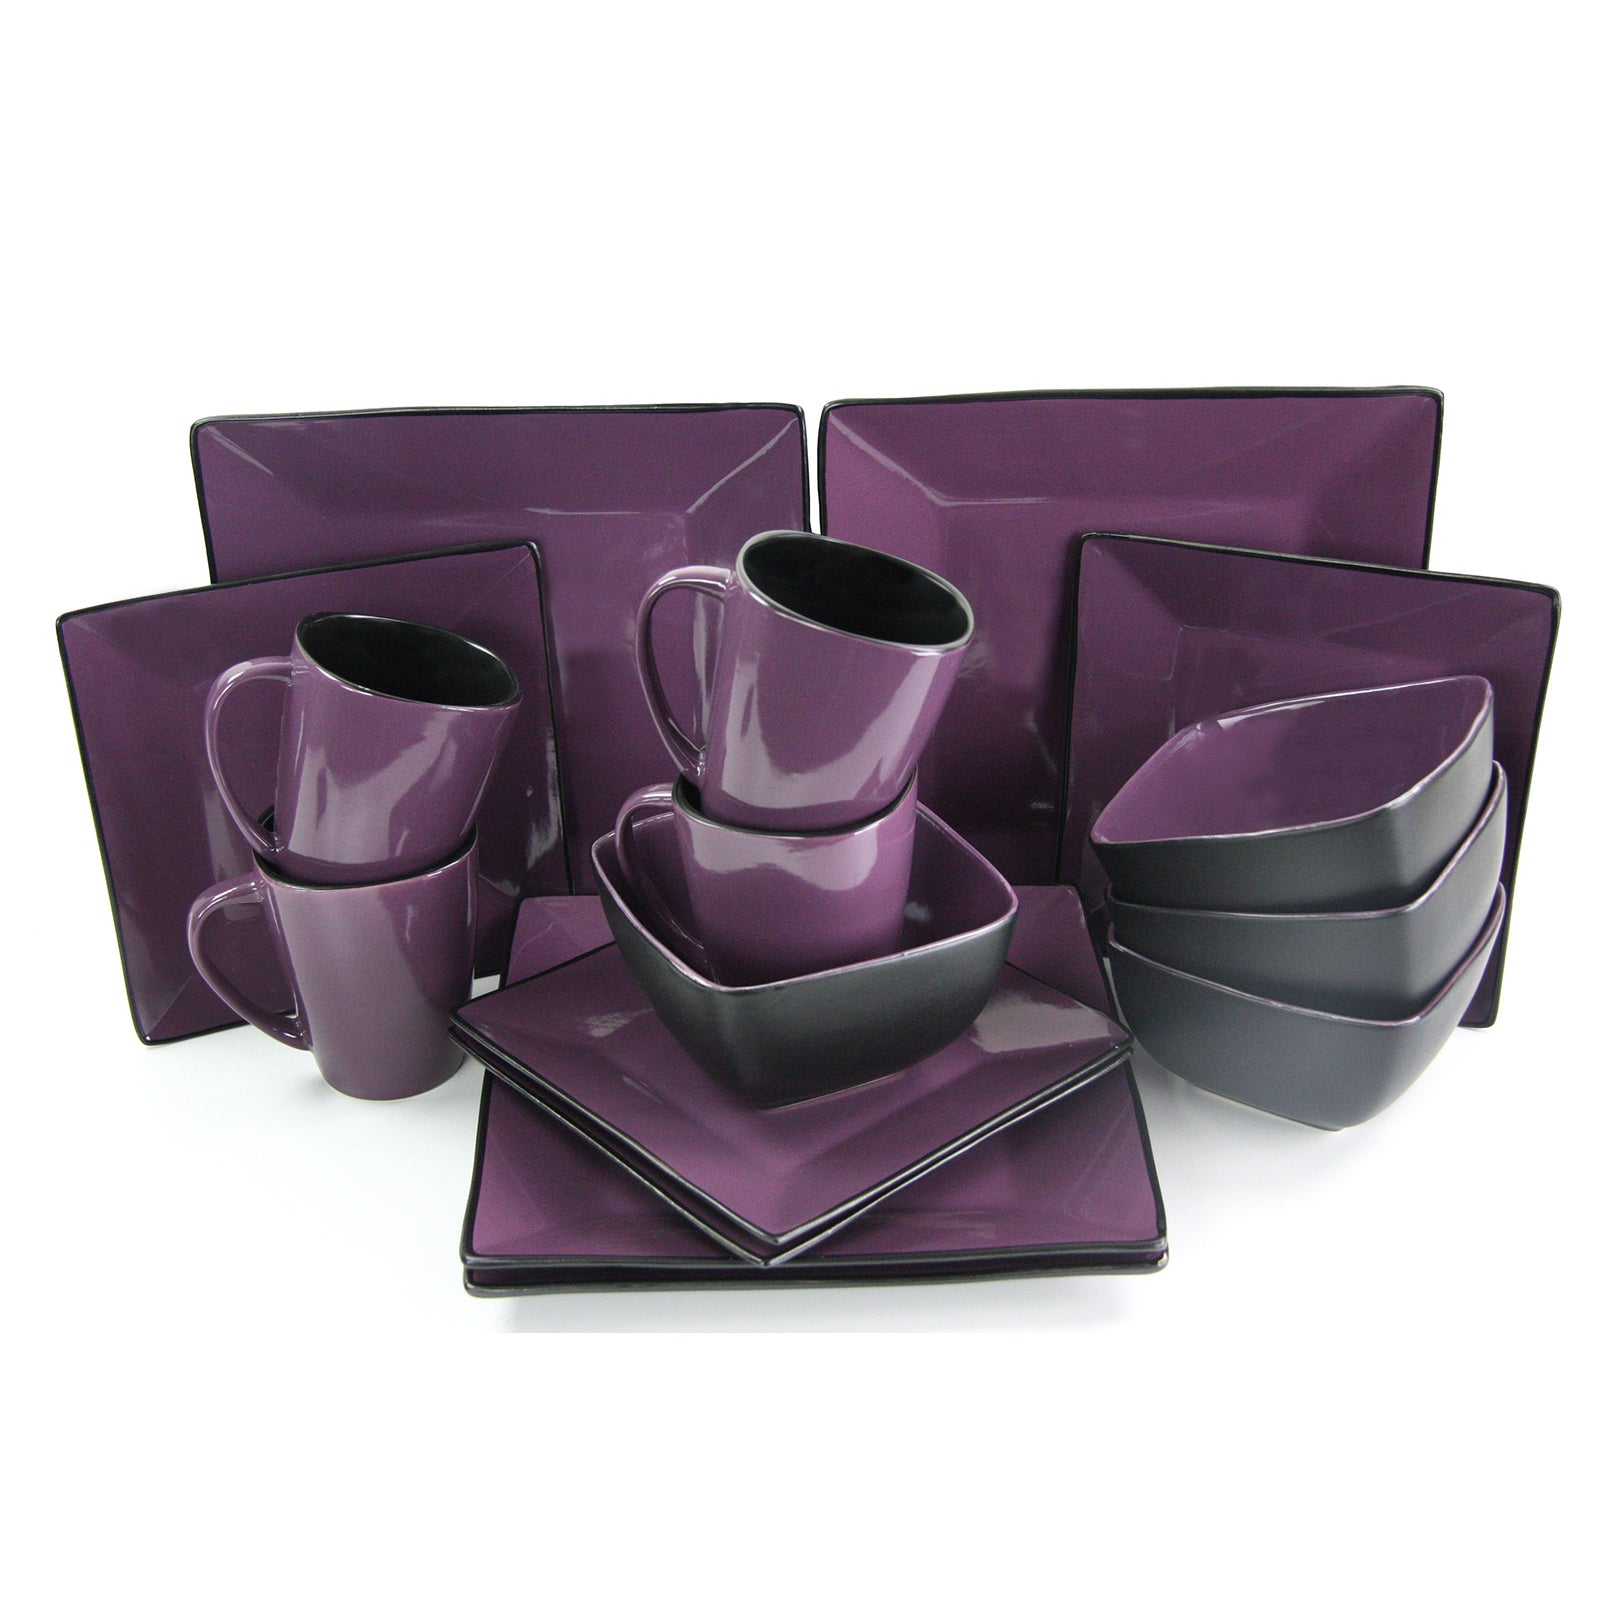 Elama Mulberry Loft 16 Piece Modern Premium Stoneware Dinnerware Set with Complete Settings for 4 - Free Shipping Today - Overstock - 20756955  sc 1 st  Overstock & Elama Mulberry Loft 16 Piece Modern Premium Stoneware Dinnerware Set ...